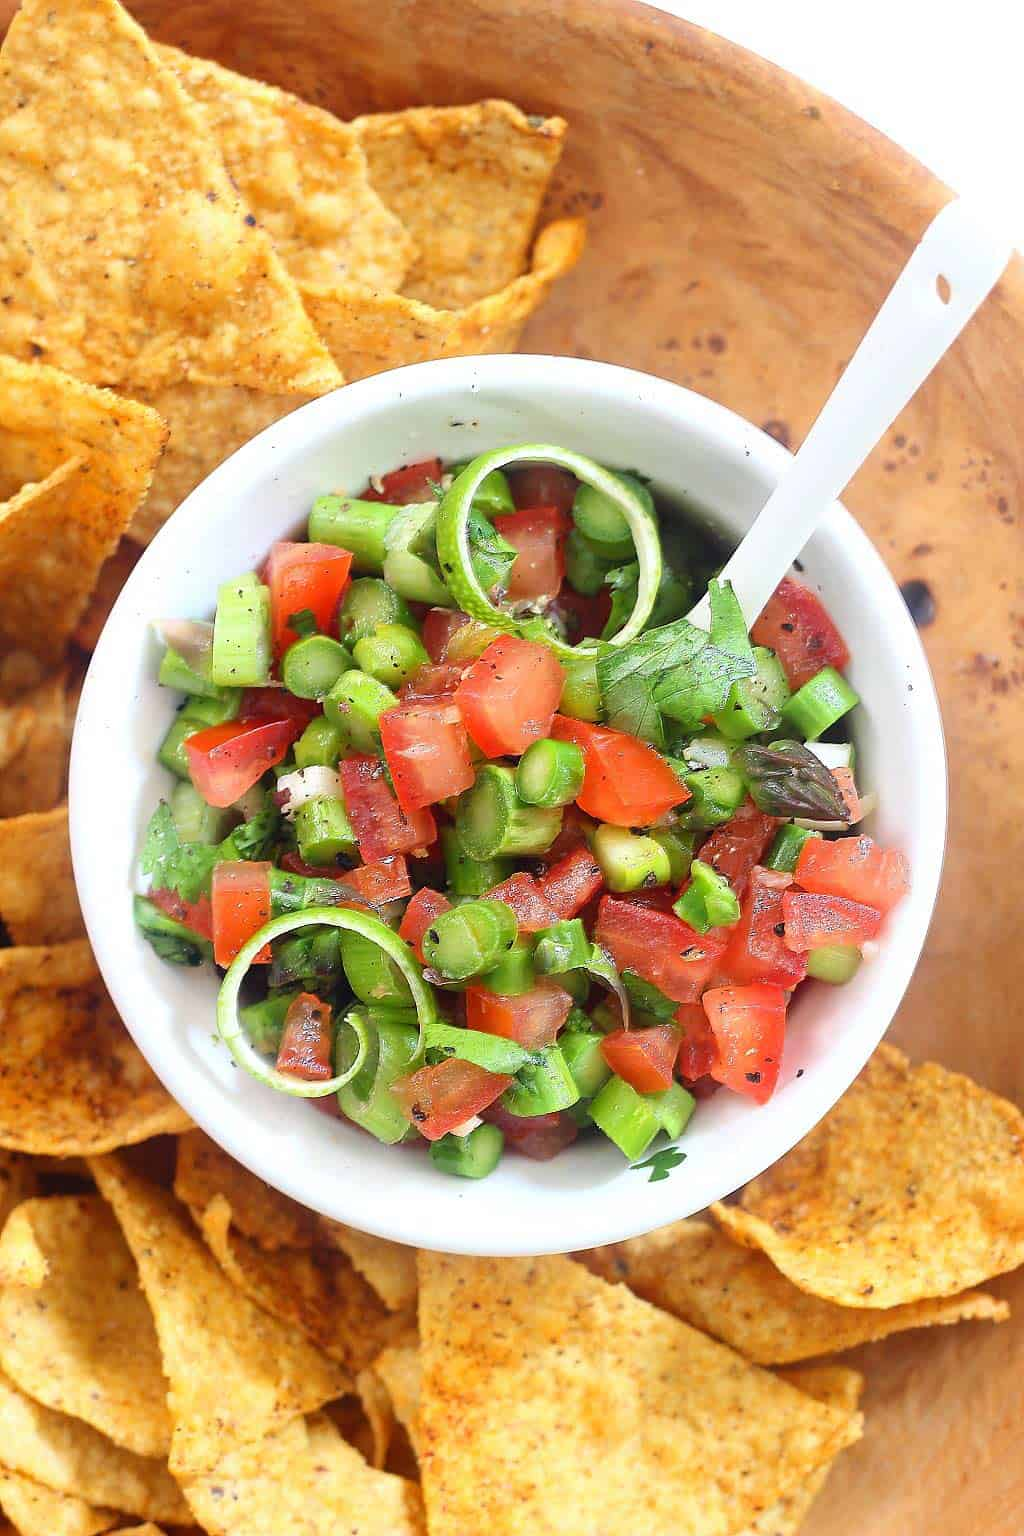 Grilled asparagus salsa + 15 Farmers market recipes to make in April! Delicious, vegetarian, (mostly) healthy spring recipes made with fresh, seasonal produce from your local farmers market or CSA bin. Eat local! // Rhubarbarians